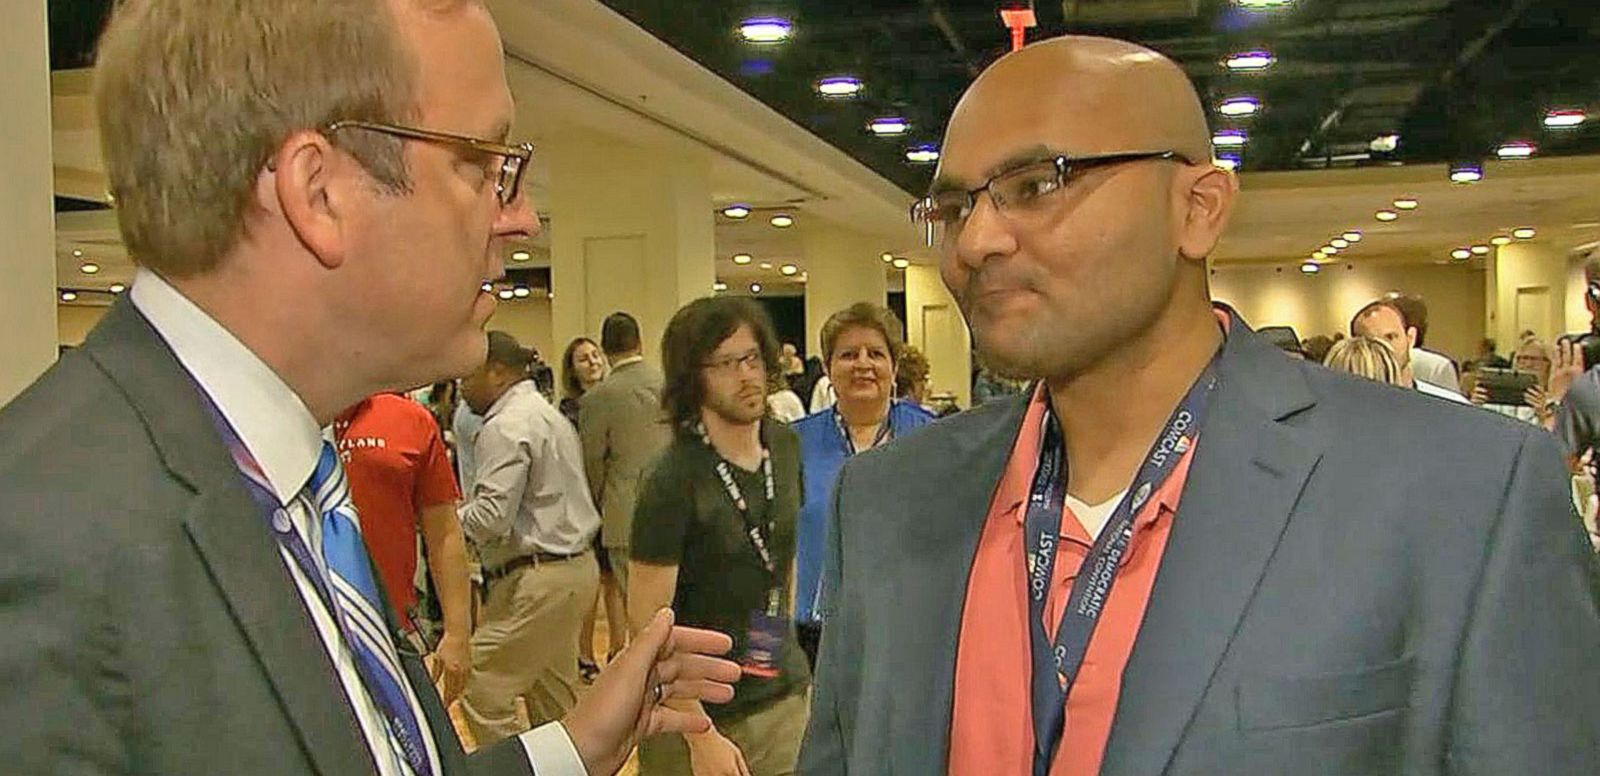 VIDEO: DNC Attendees React to Debbie Wasserman Schultz's Presence at Convention